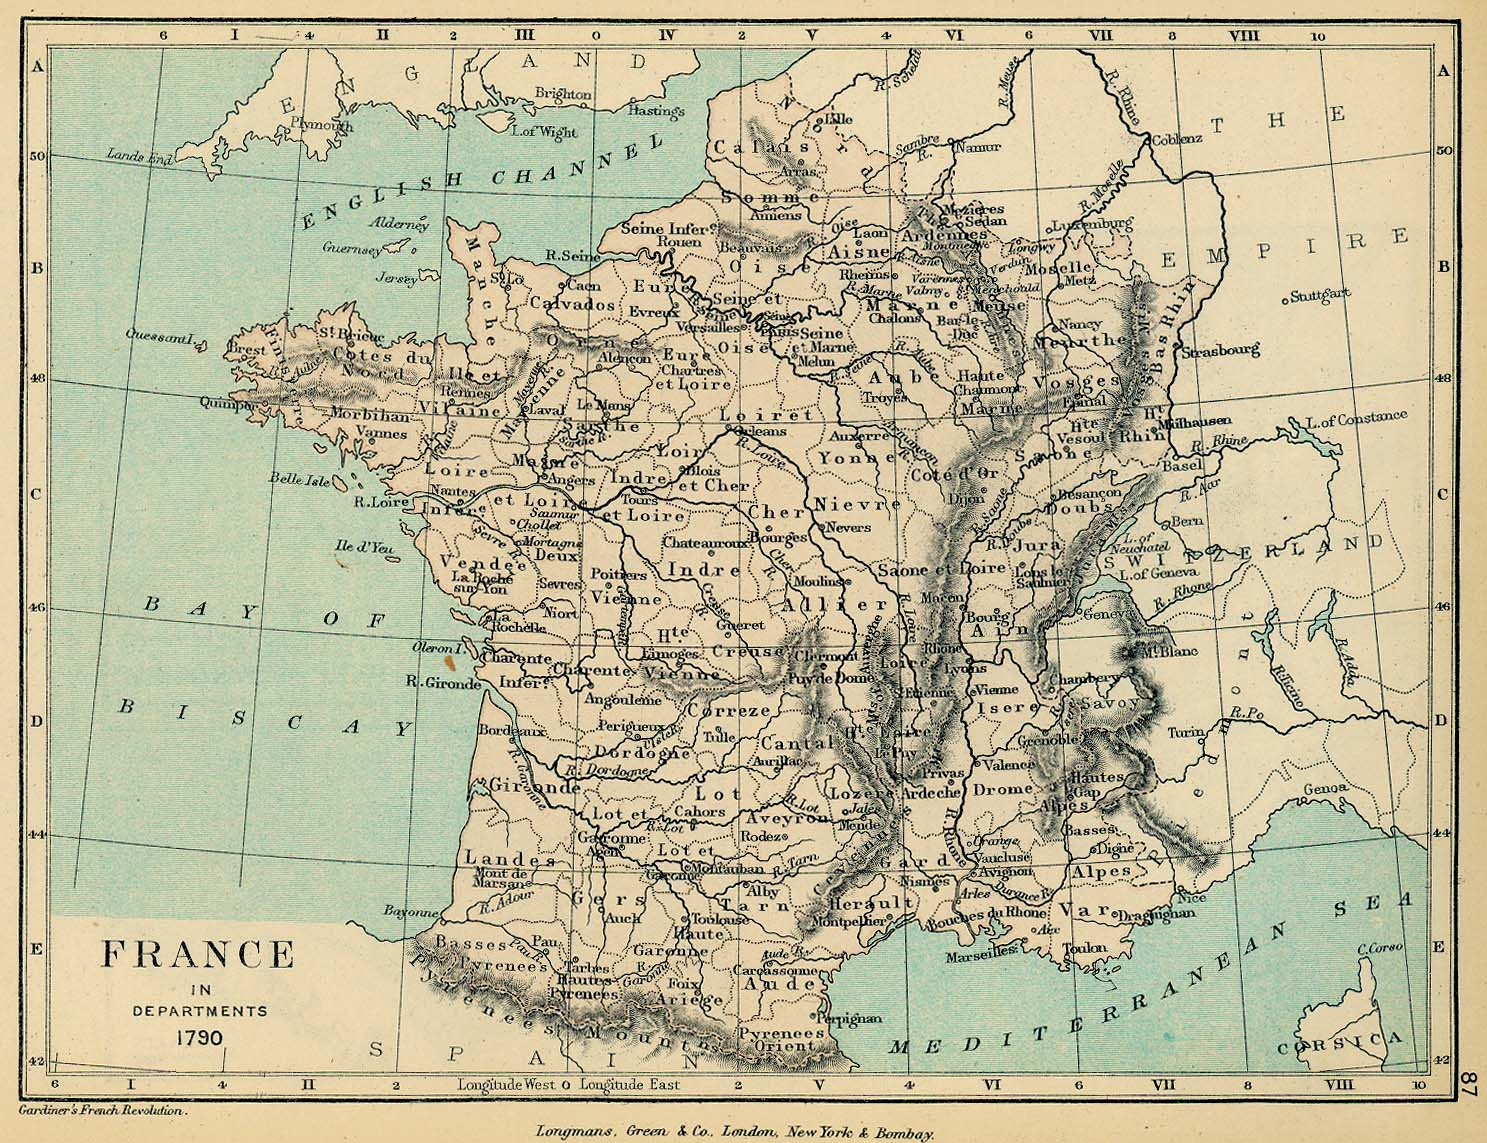 Map of France in Departments, 1790